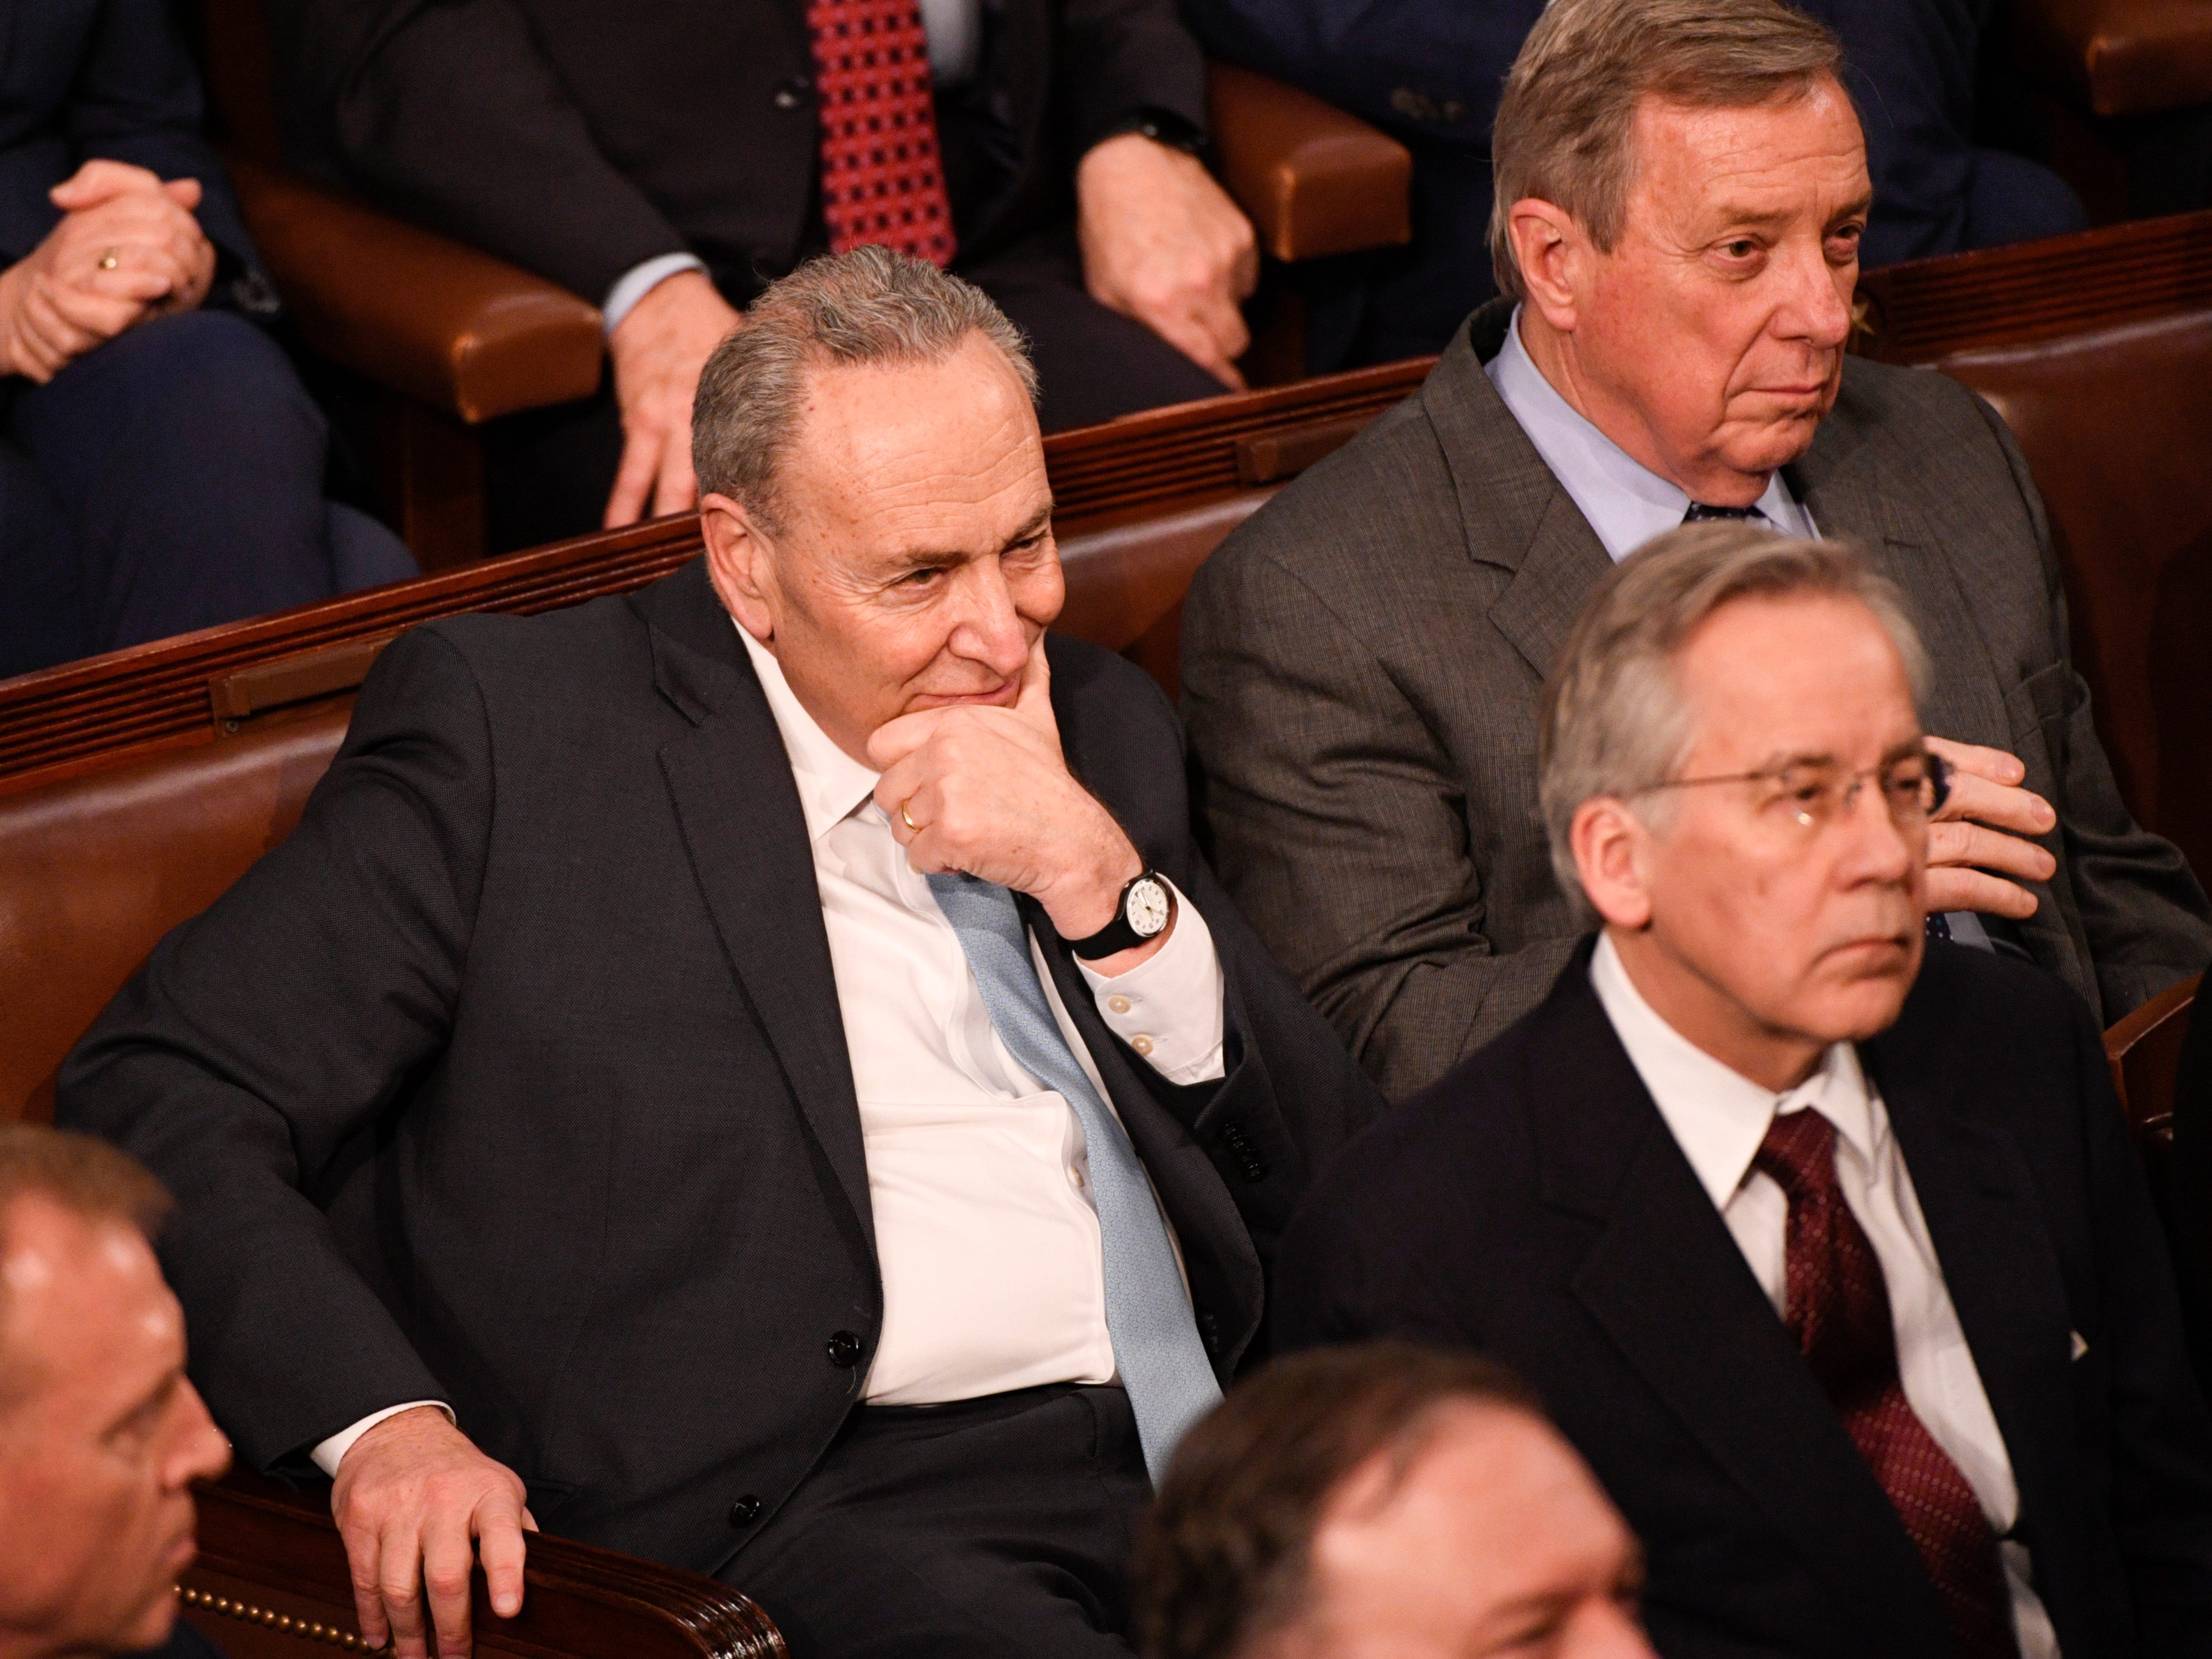 Sen. Chuck Schumer (D-N.Y.) and Sen. Dick Durbin (D-Ill.) listen to President Donald Trump delivers the State of the Union address.